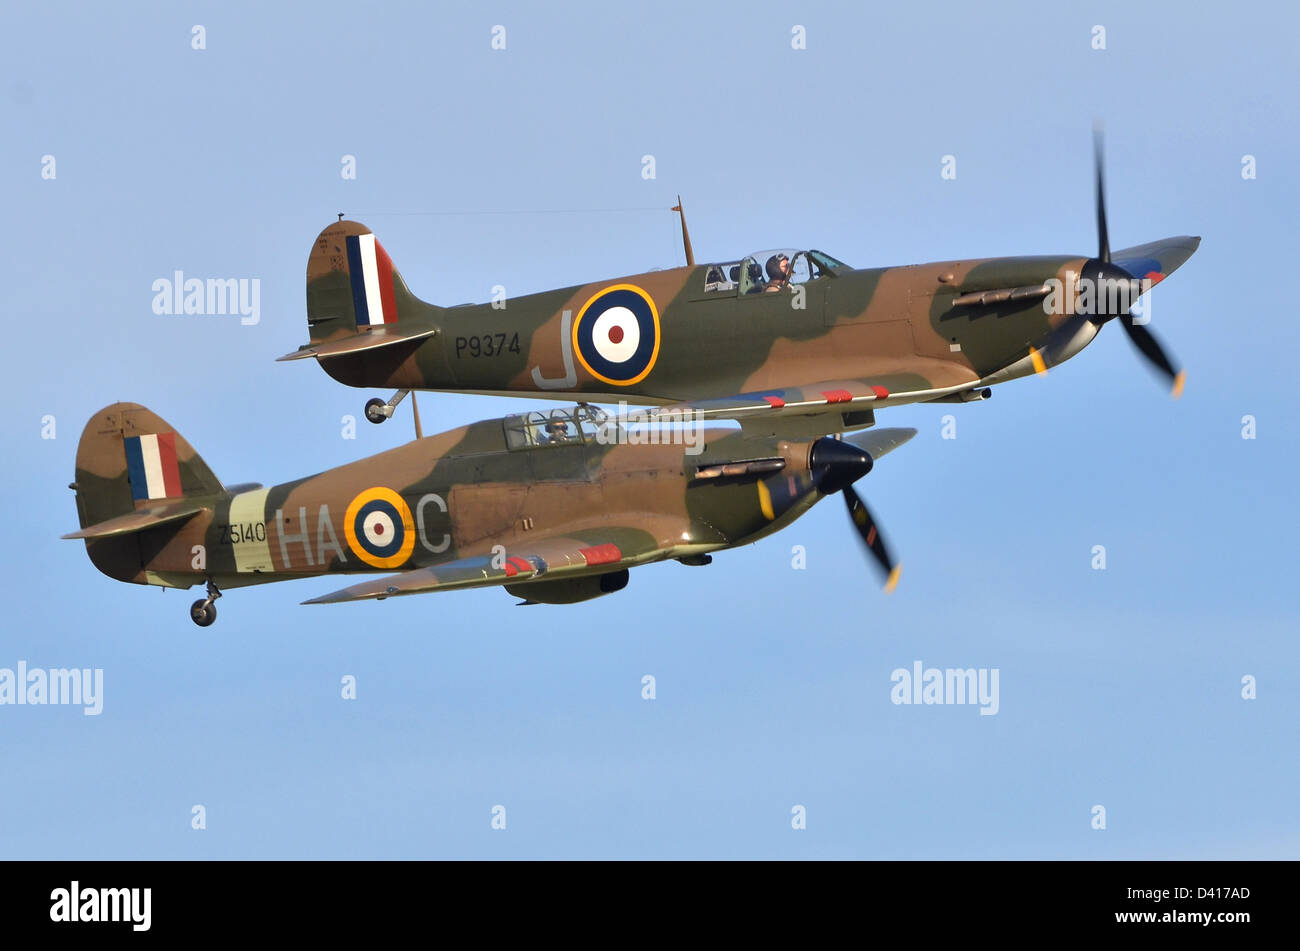 Spitfire 1A plane & Hurricane Mk. XIIA plane in RAF Battle of Britain 1940 camouflage displaying at Duxford - Stock Image